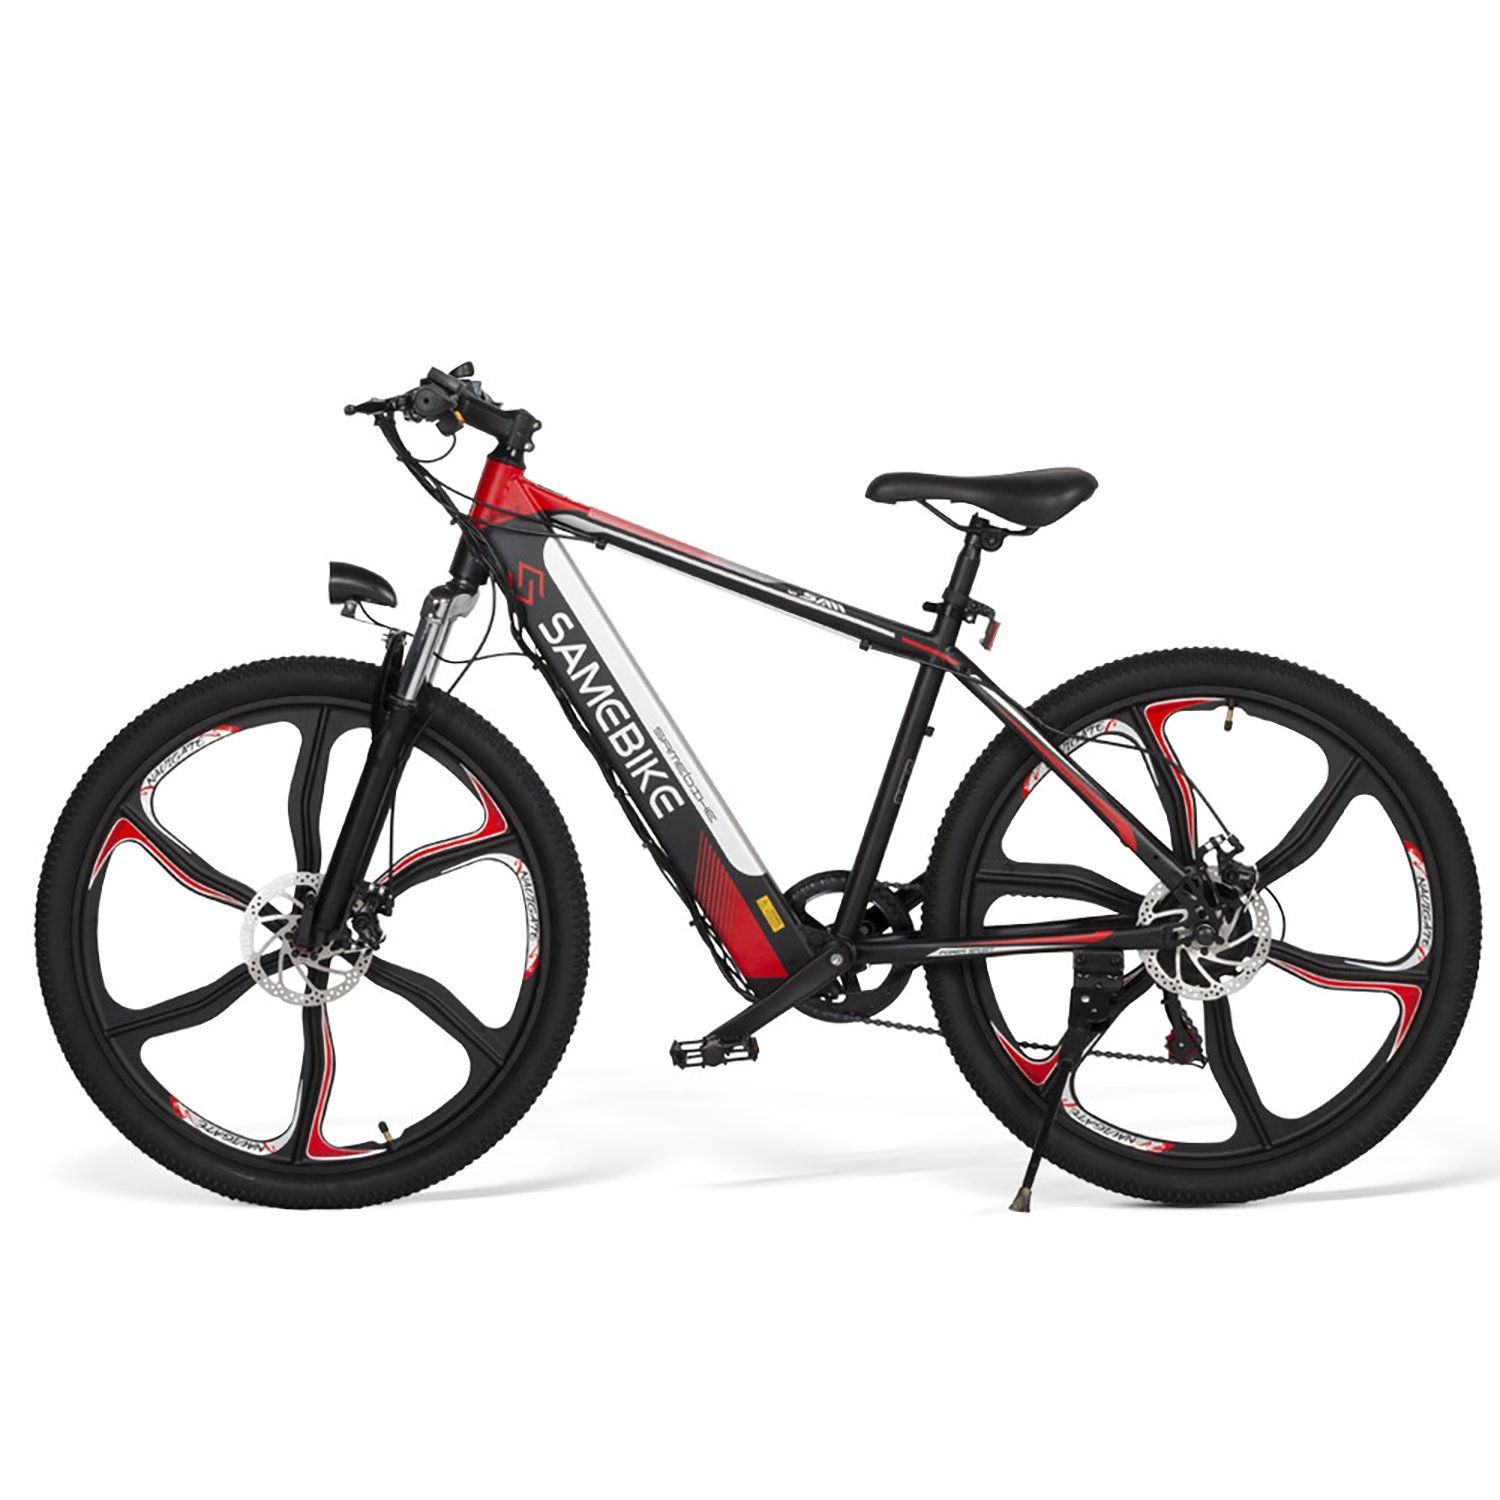 SAMEBIKE SH26 Electric Mountain Bike 26 Inch Tires 350W Motor 8Ah Battery Max 30 KPH Ship from US Warehouse